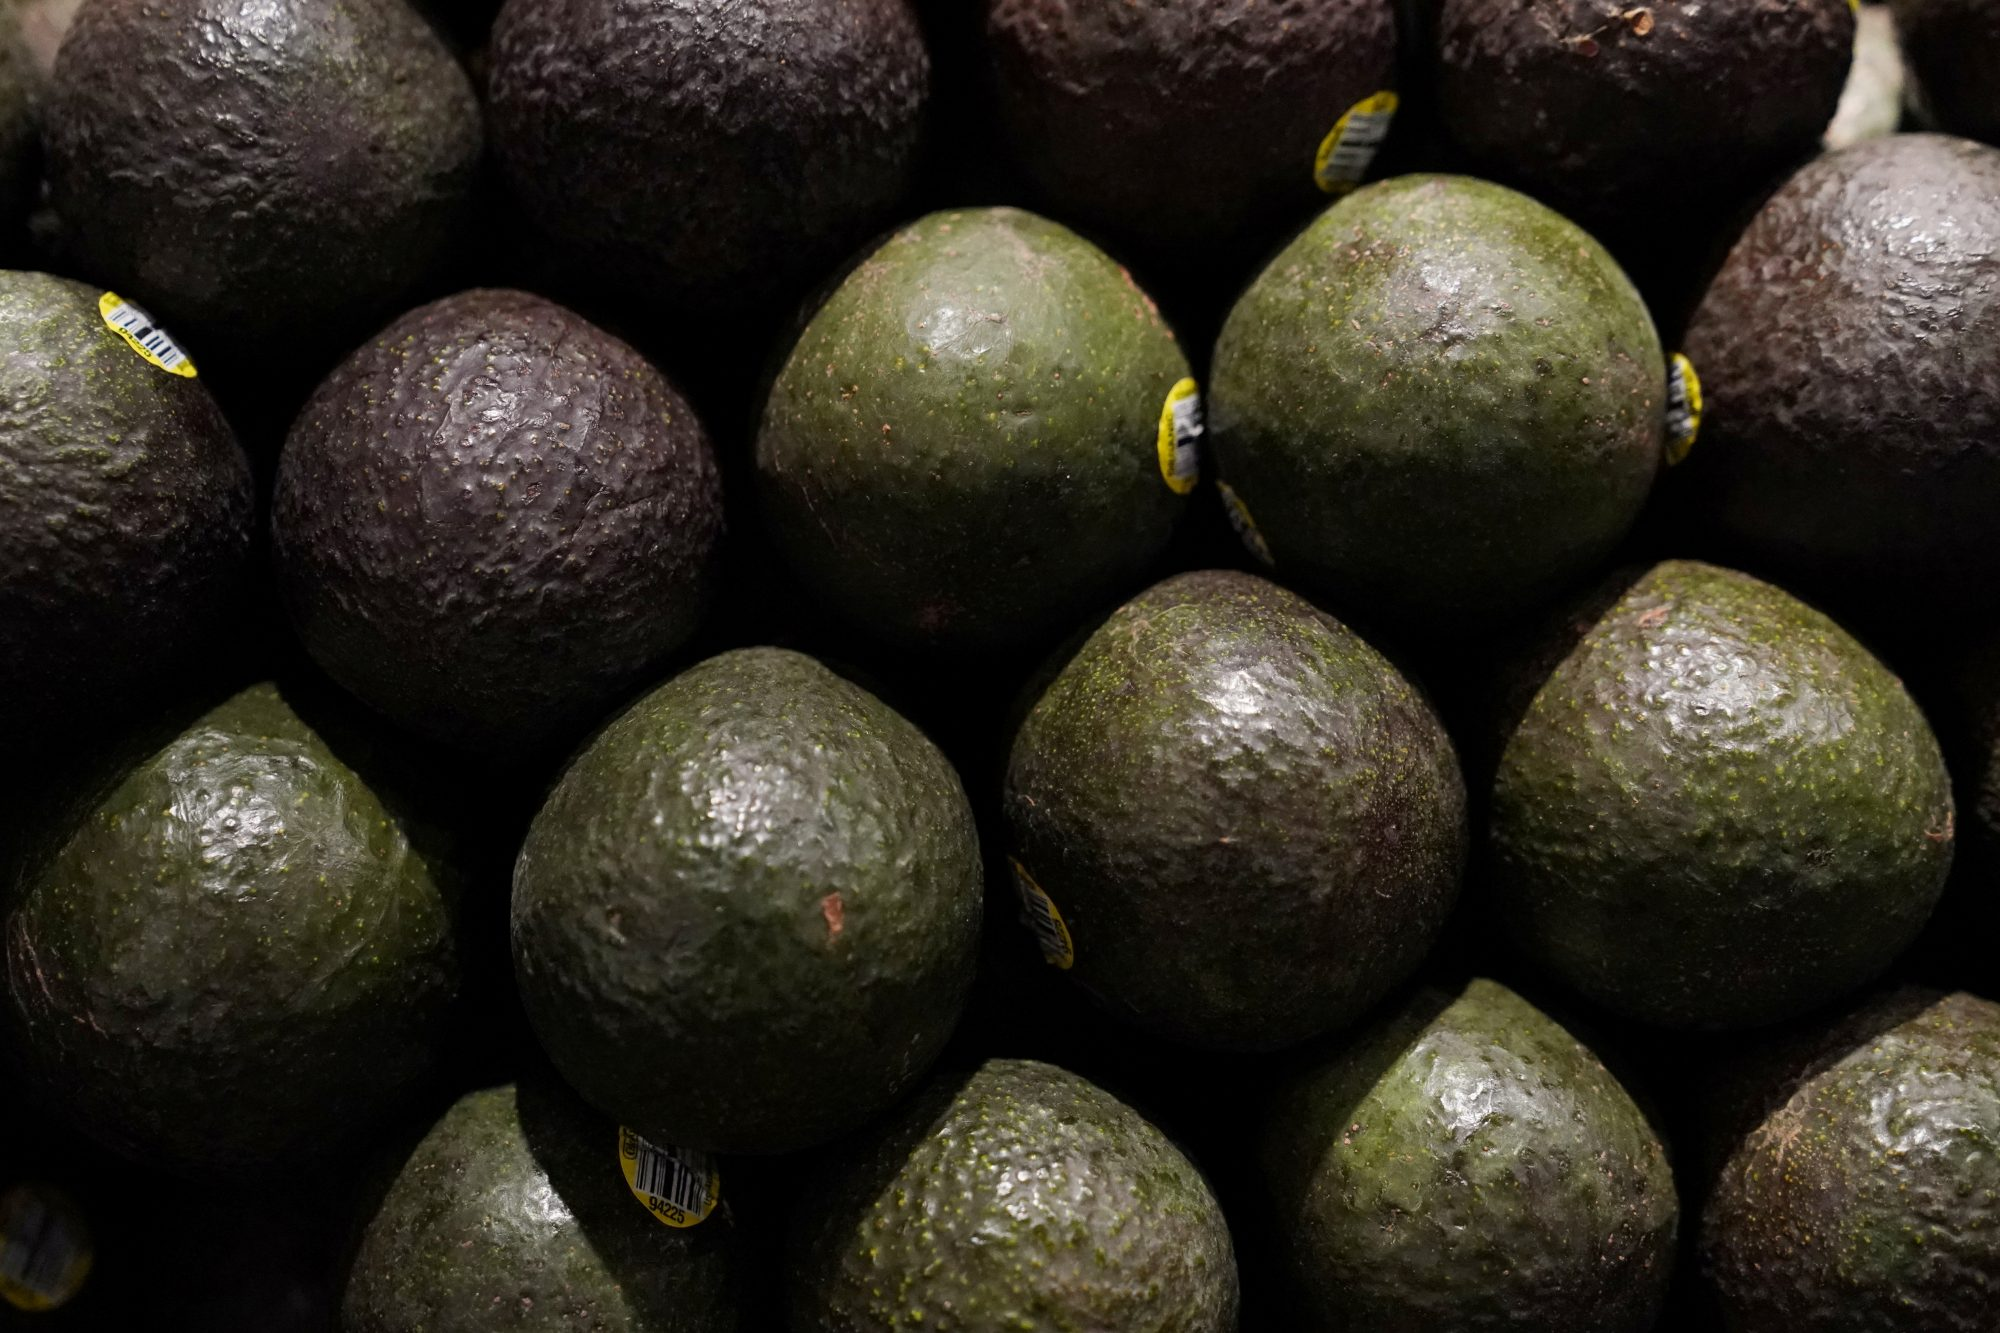 Avocados for sale are pictured inside a Whole Foods Market in the Manhattan borough of New York City